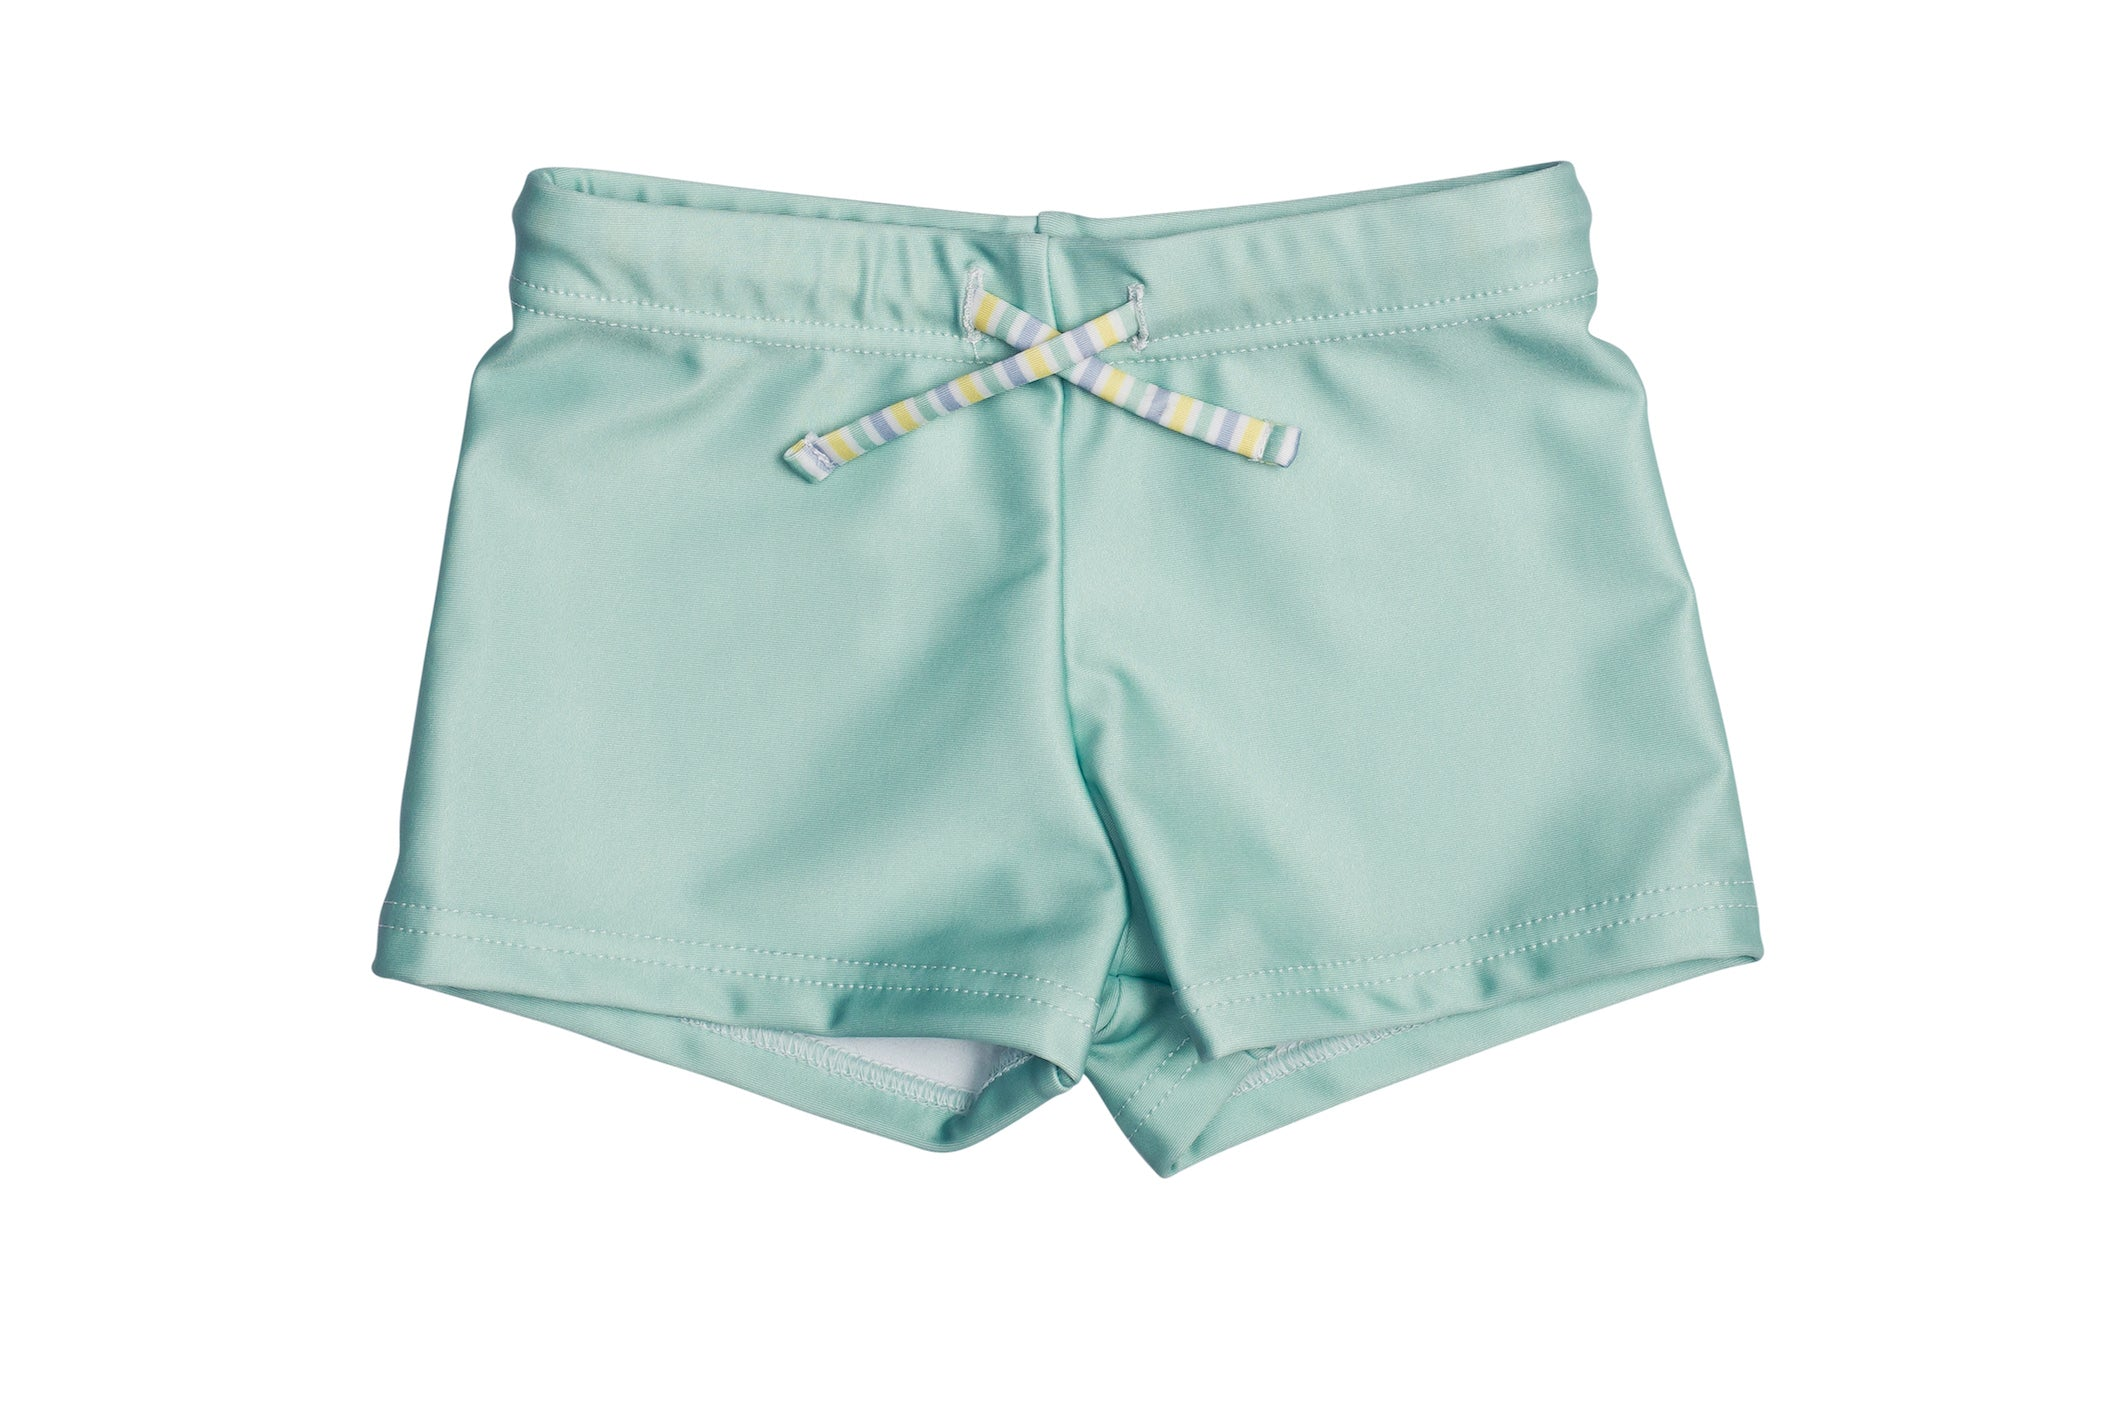 kids great ocean green budgie brief (size 3 sold out)